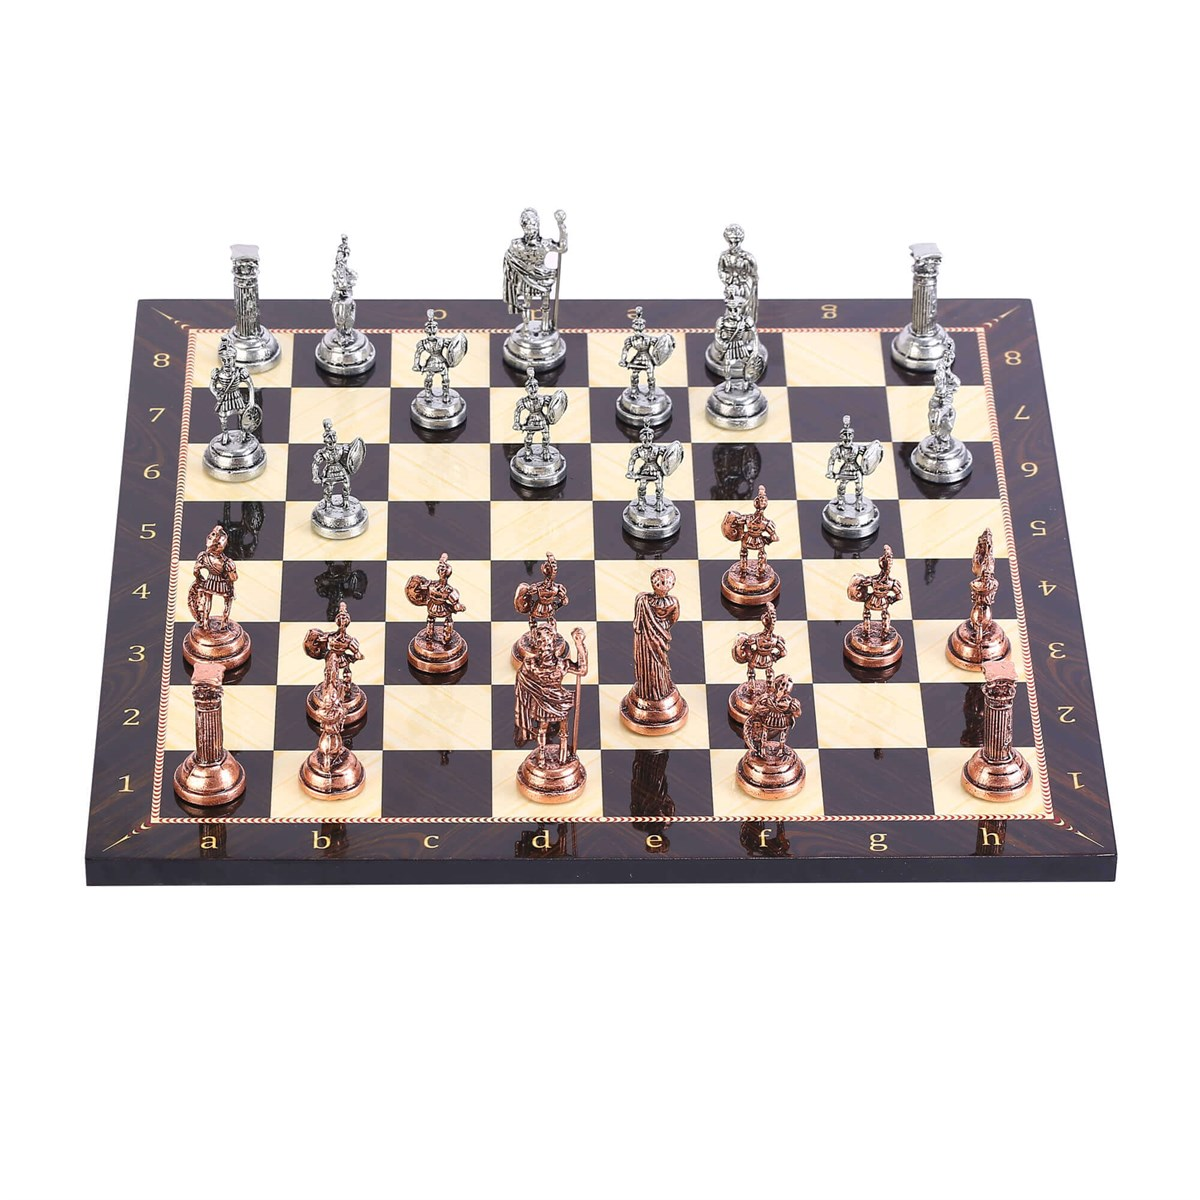 Historical Antique Copper Rome Figures Metal Chess Set, Handmade Pieces, Walnut Patterned Wood Chess Board Small Size King 4.8cm